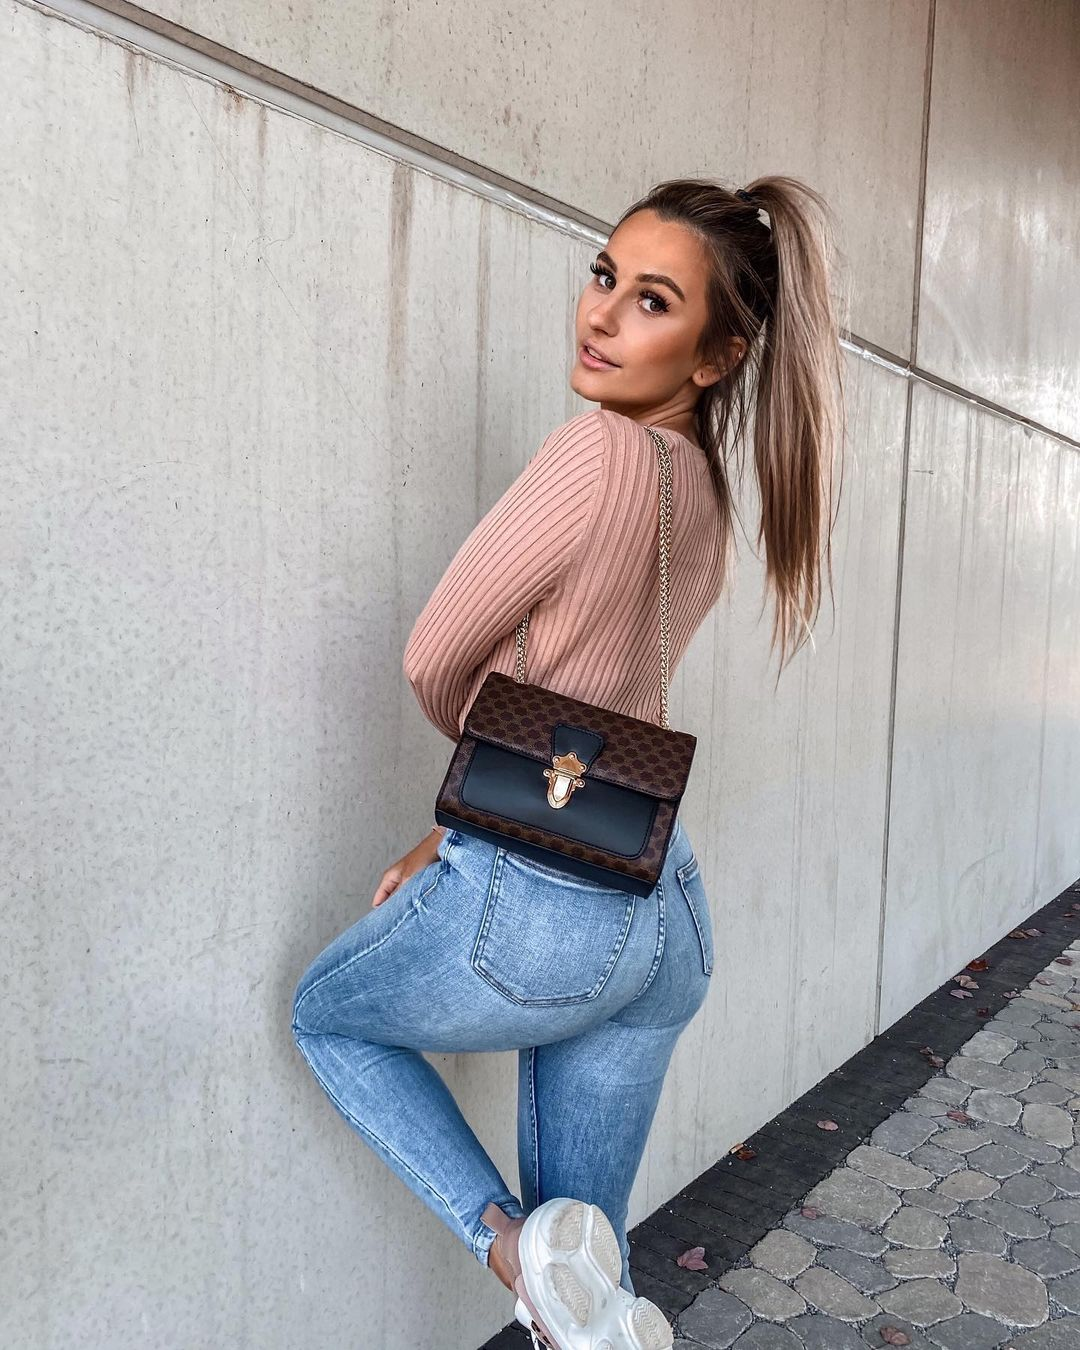 Lisabe-Wallpapers-Insta-Fit-Bio-3